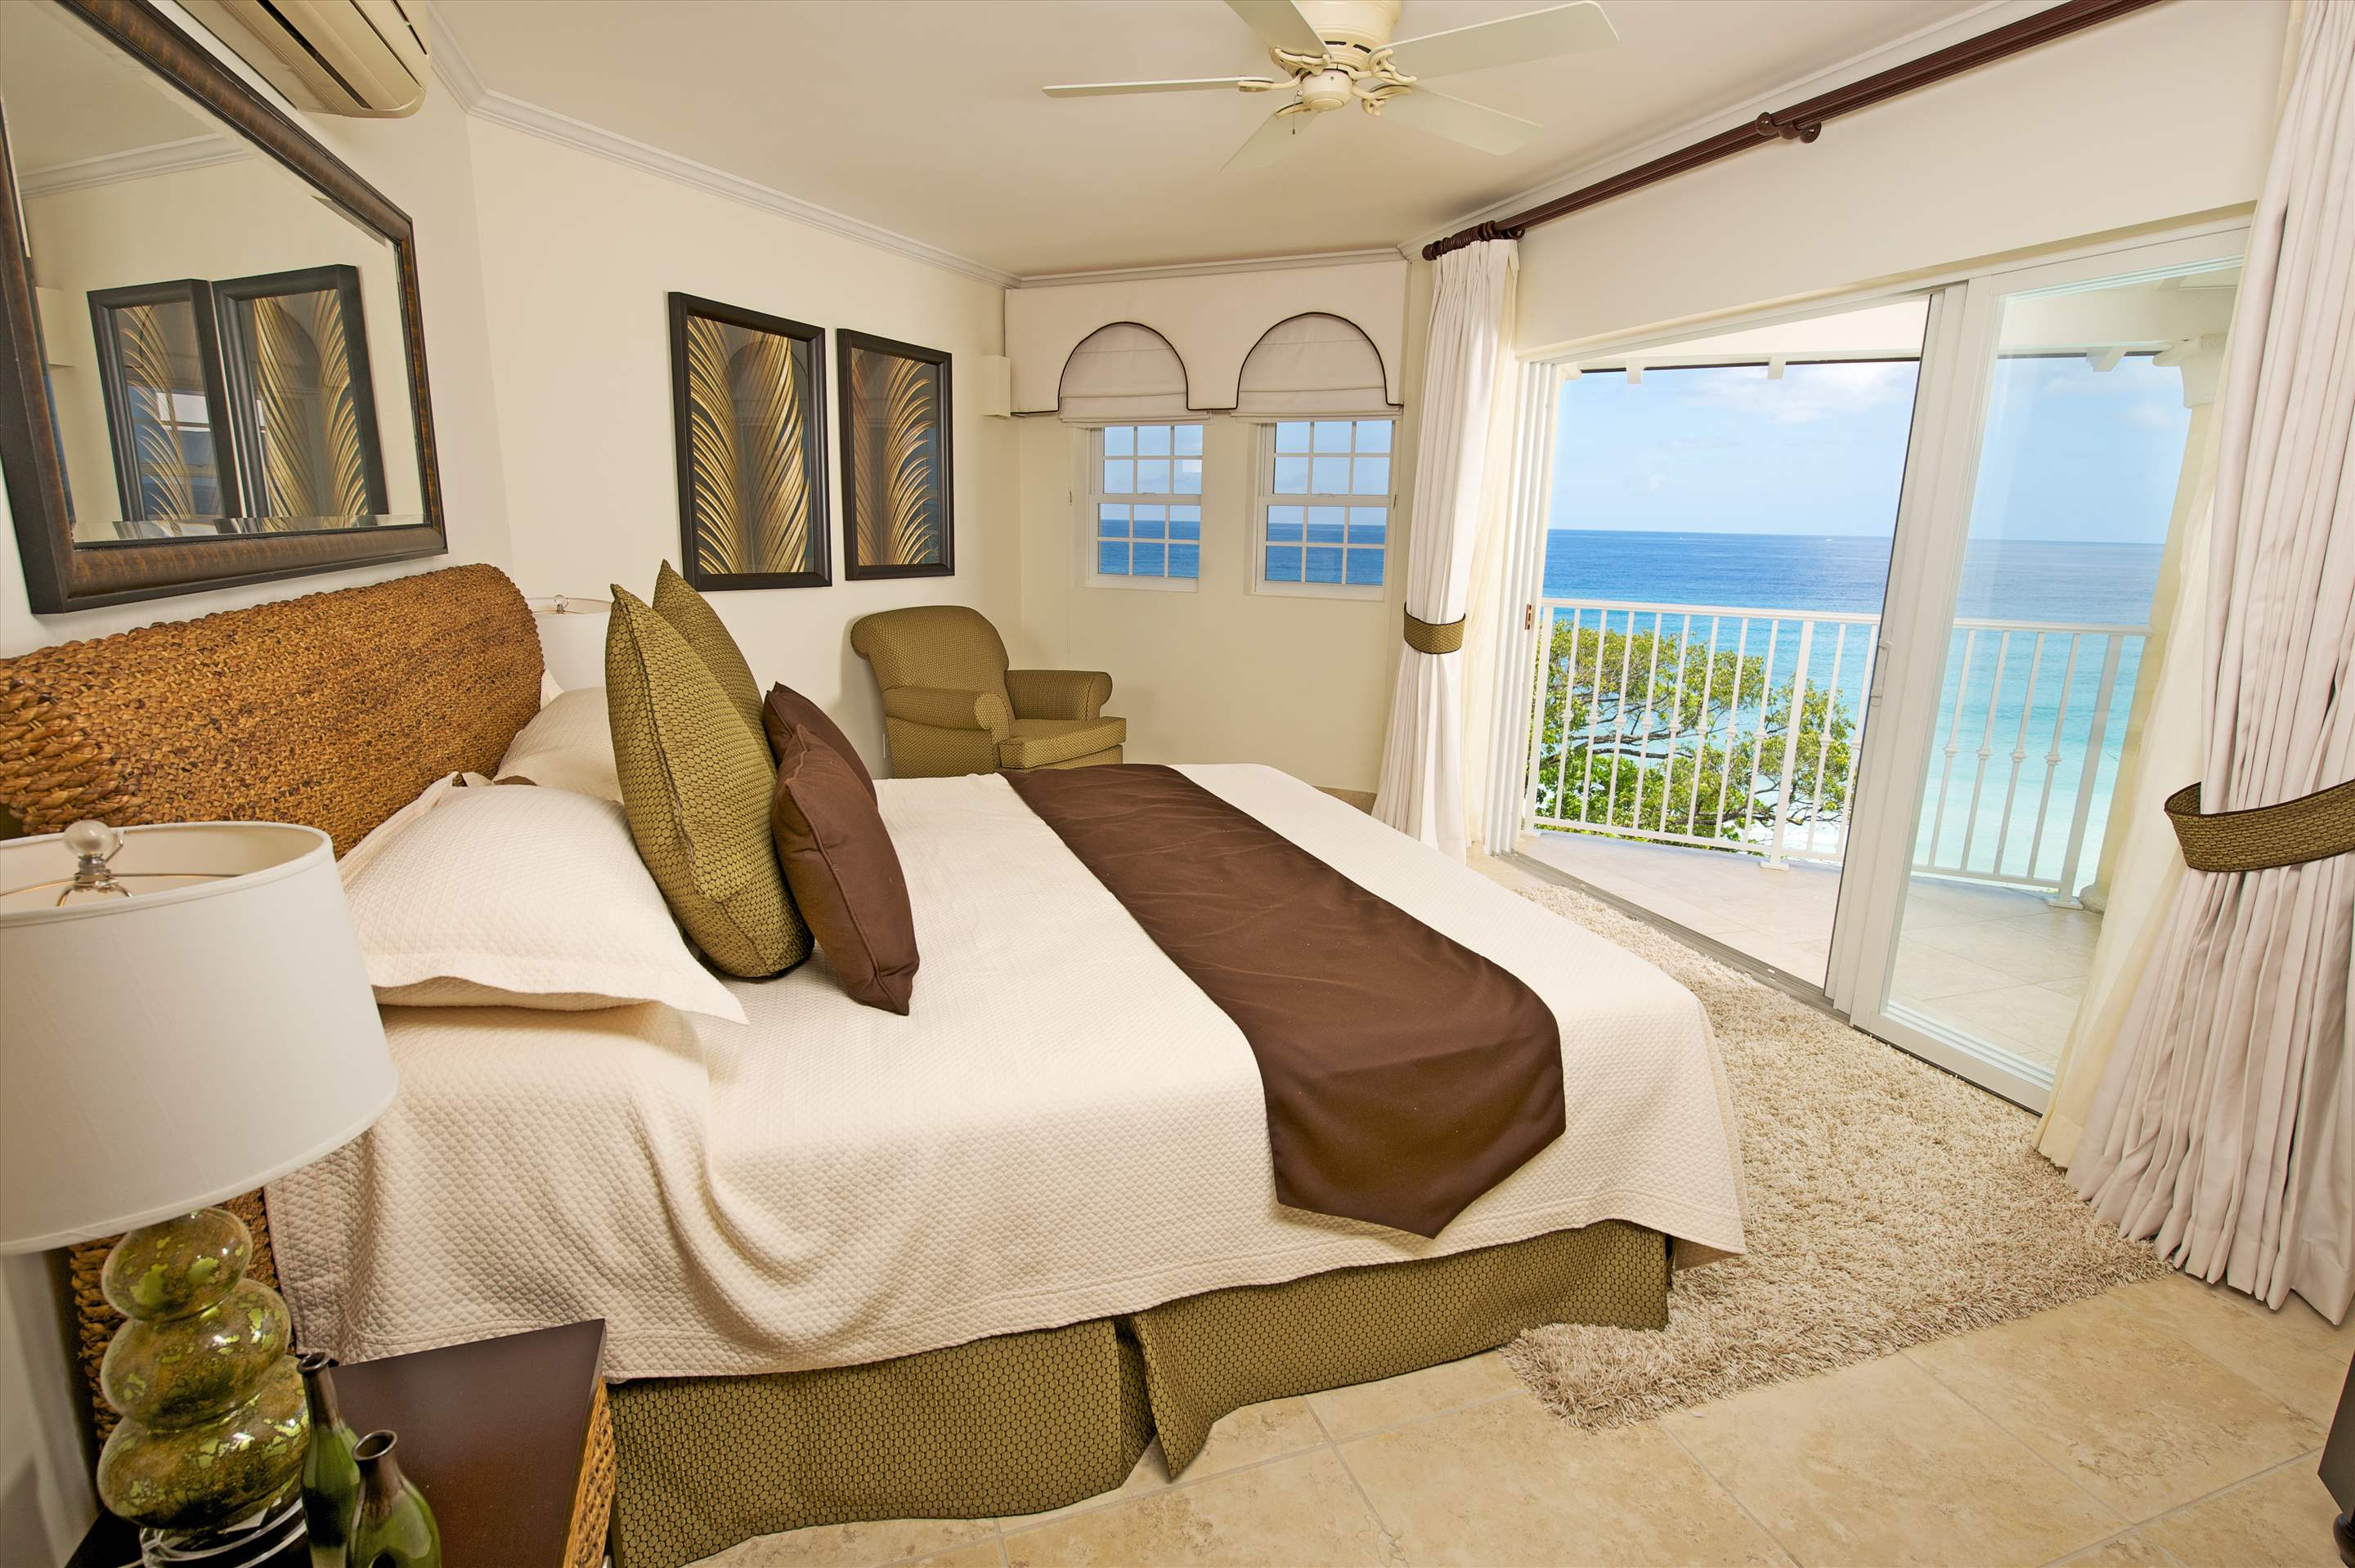 Sapphire Beach 509, 2 bedroom, 3 bedroom apartment in St. Lawrence Gap & South Coast, Barbados Photo #7